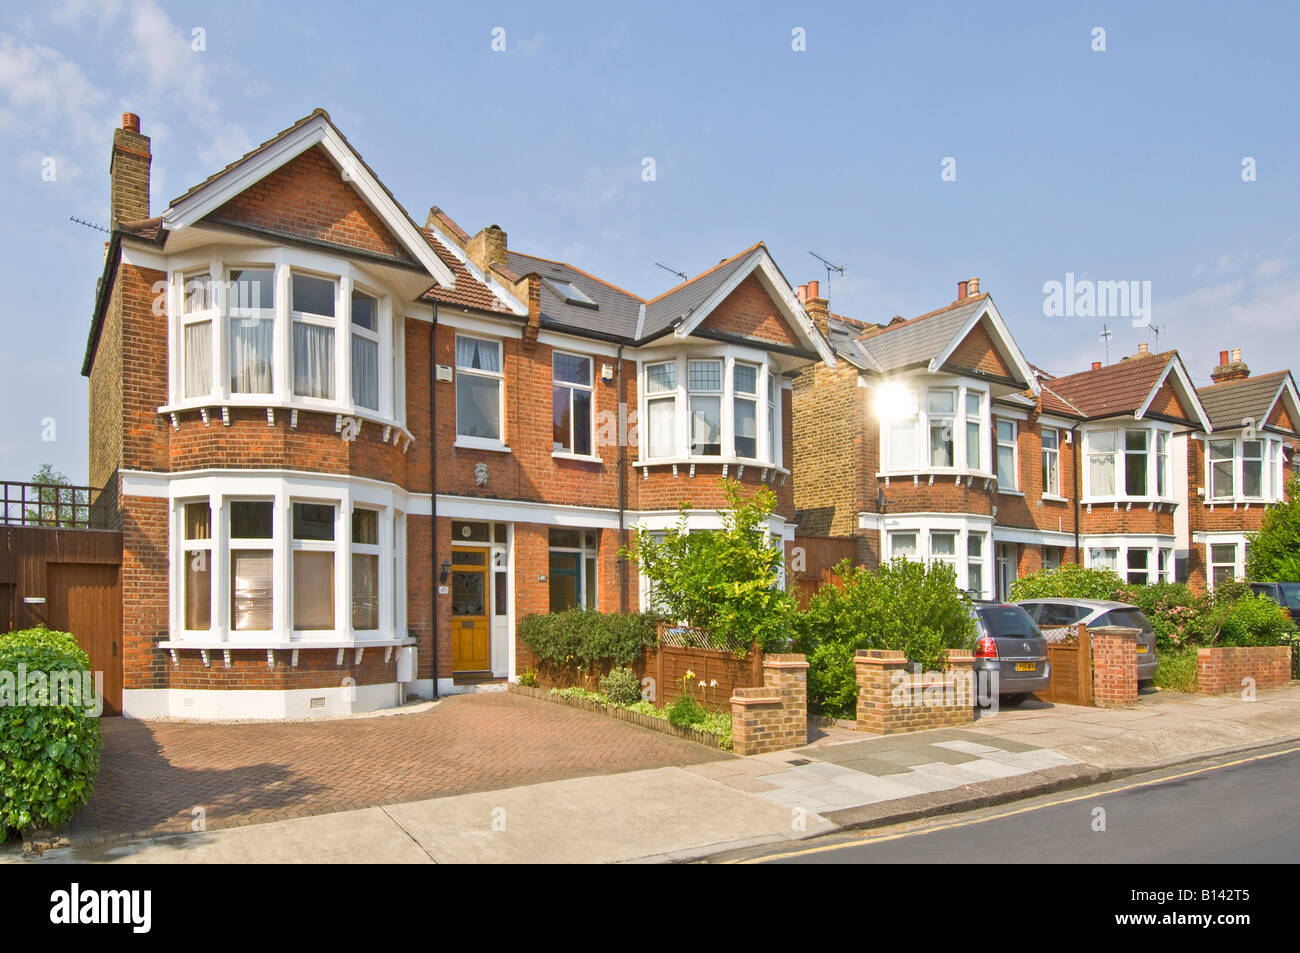 A Row Of Typical 3 Bed Semi Detached Victorian Edwardian